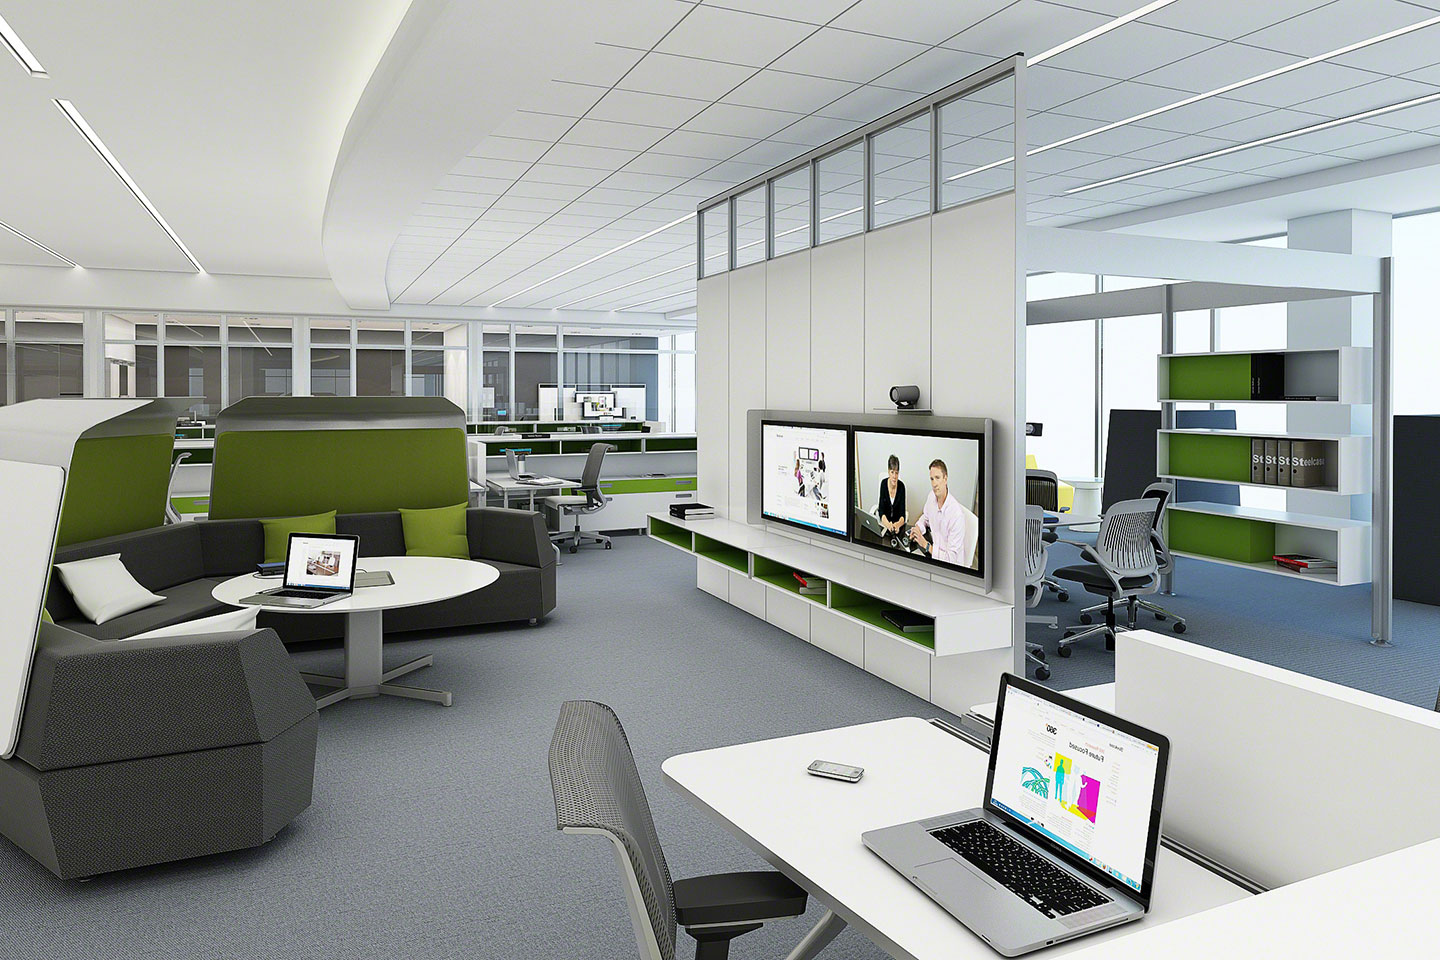 Simple office layout fixes to strengthen office for Office space planning